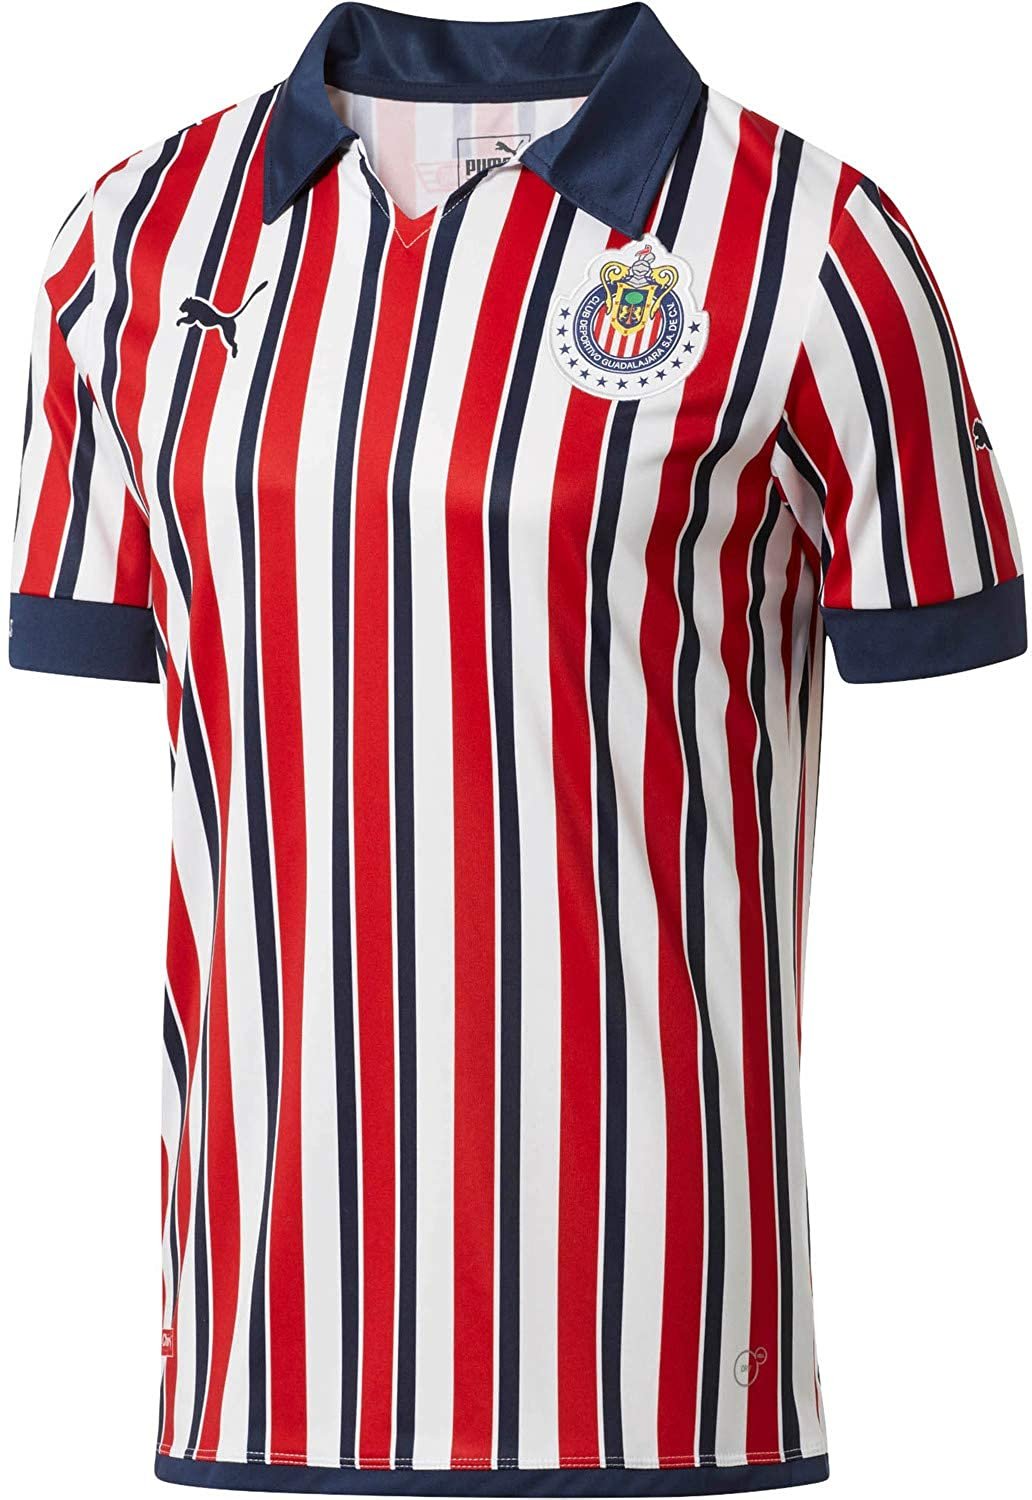 new product 09a18 2e587 Amazon.com: PUMA Chivas Home Mundial de Clubes Jersey 2018 ...